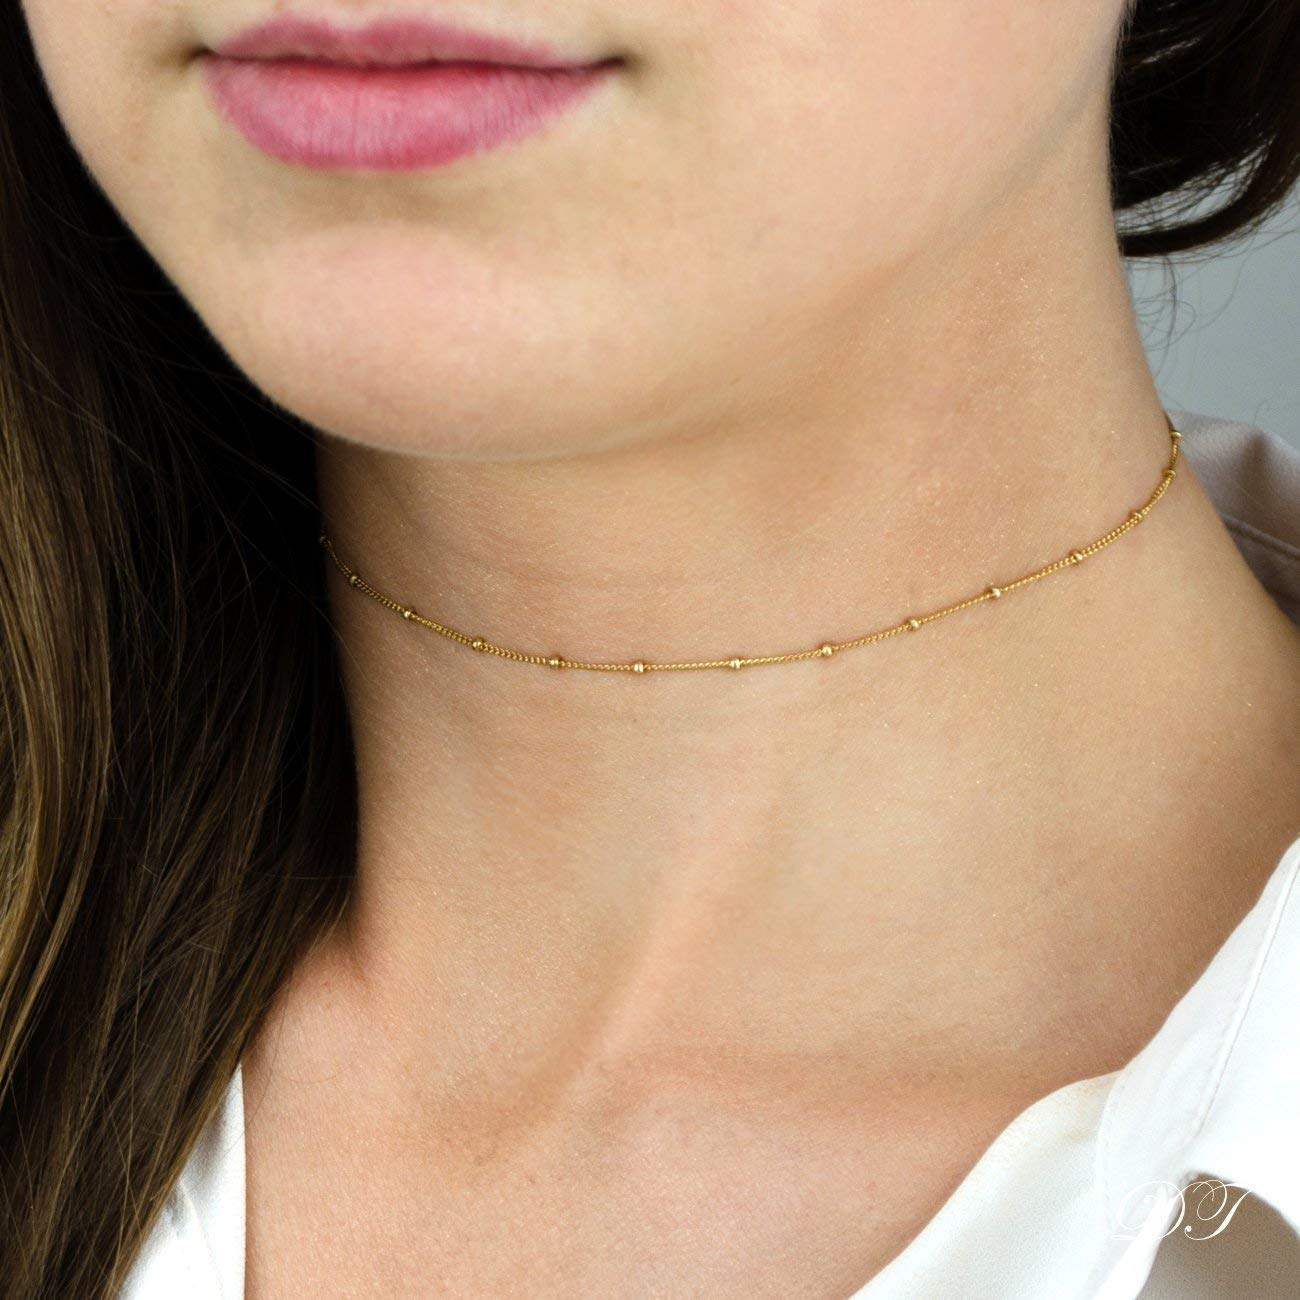 Dew Drops choker Necklace, Dainty Gold Chain Choker Necklace, beaded Chain Choker, Gold Choker, Dainty Choker, Thin Choker, Delicate Choker